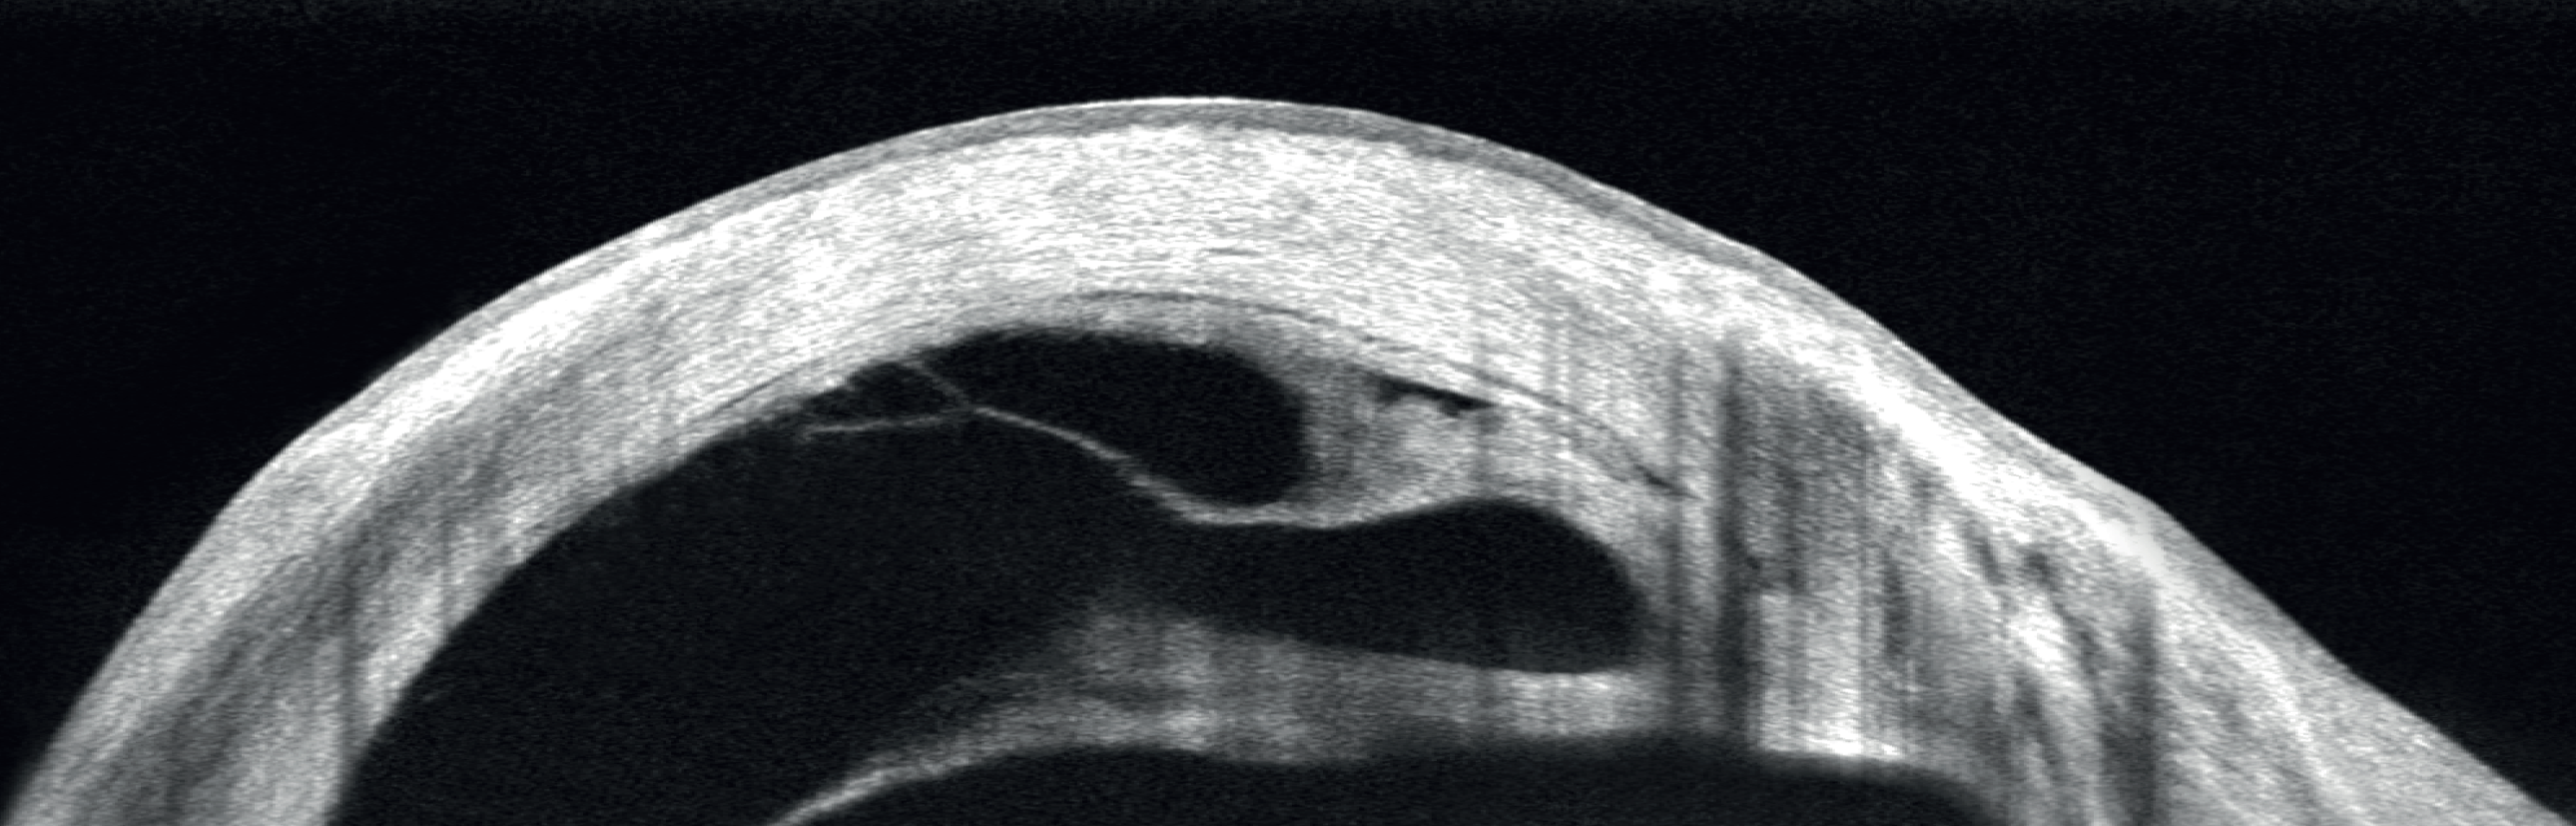 Wide cornea scan, Descemet's membrane detachment (DMD) and iridocorneal adhesions